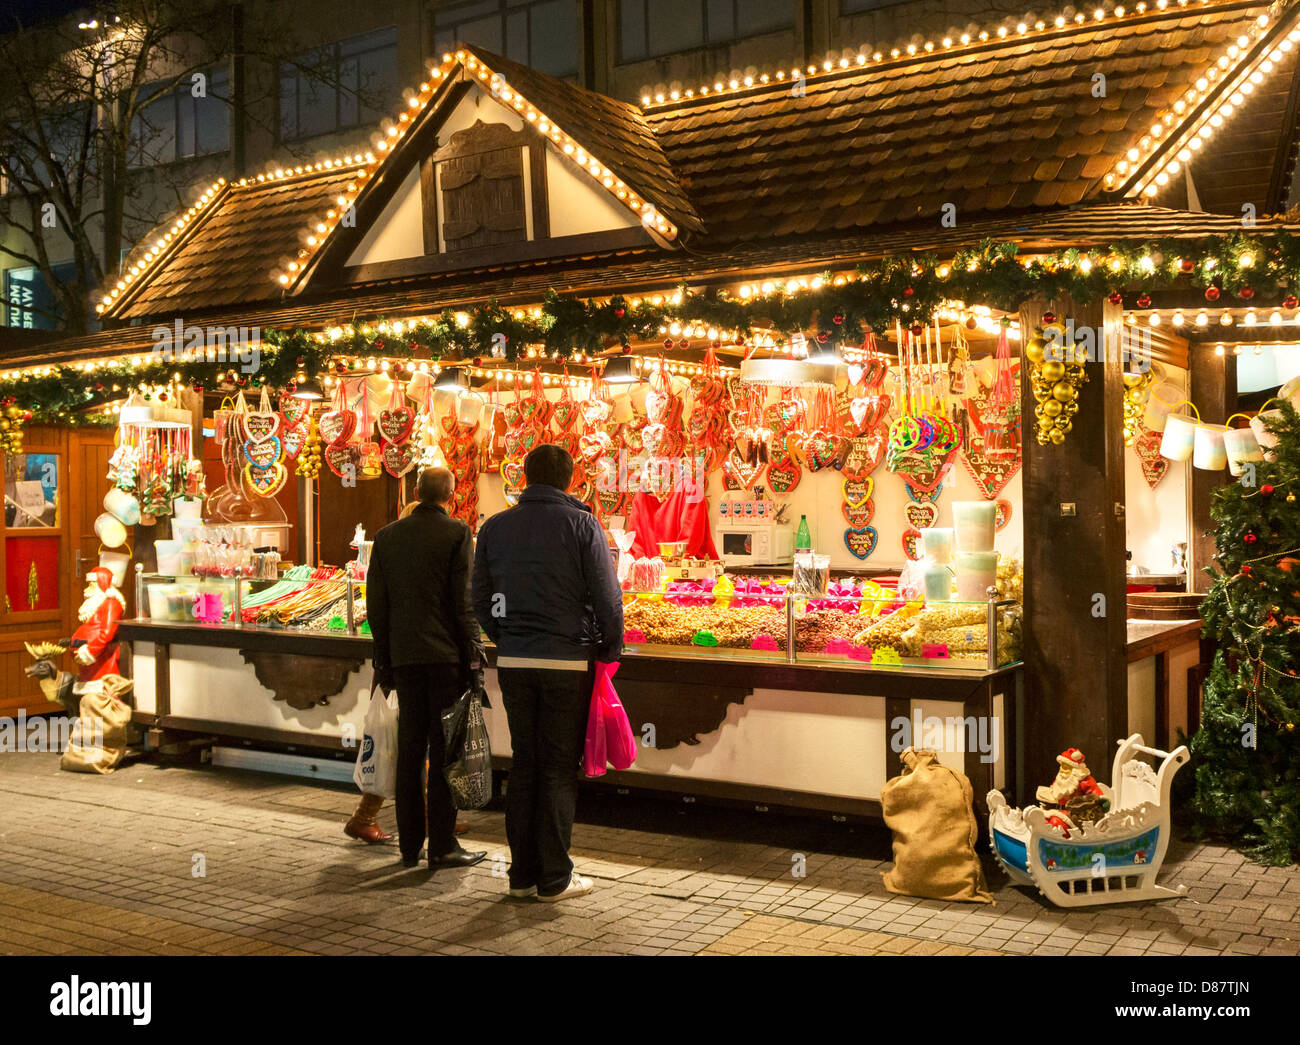 Christmas Market Stalls High Resolution Stock Photography And Images Alamy